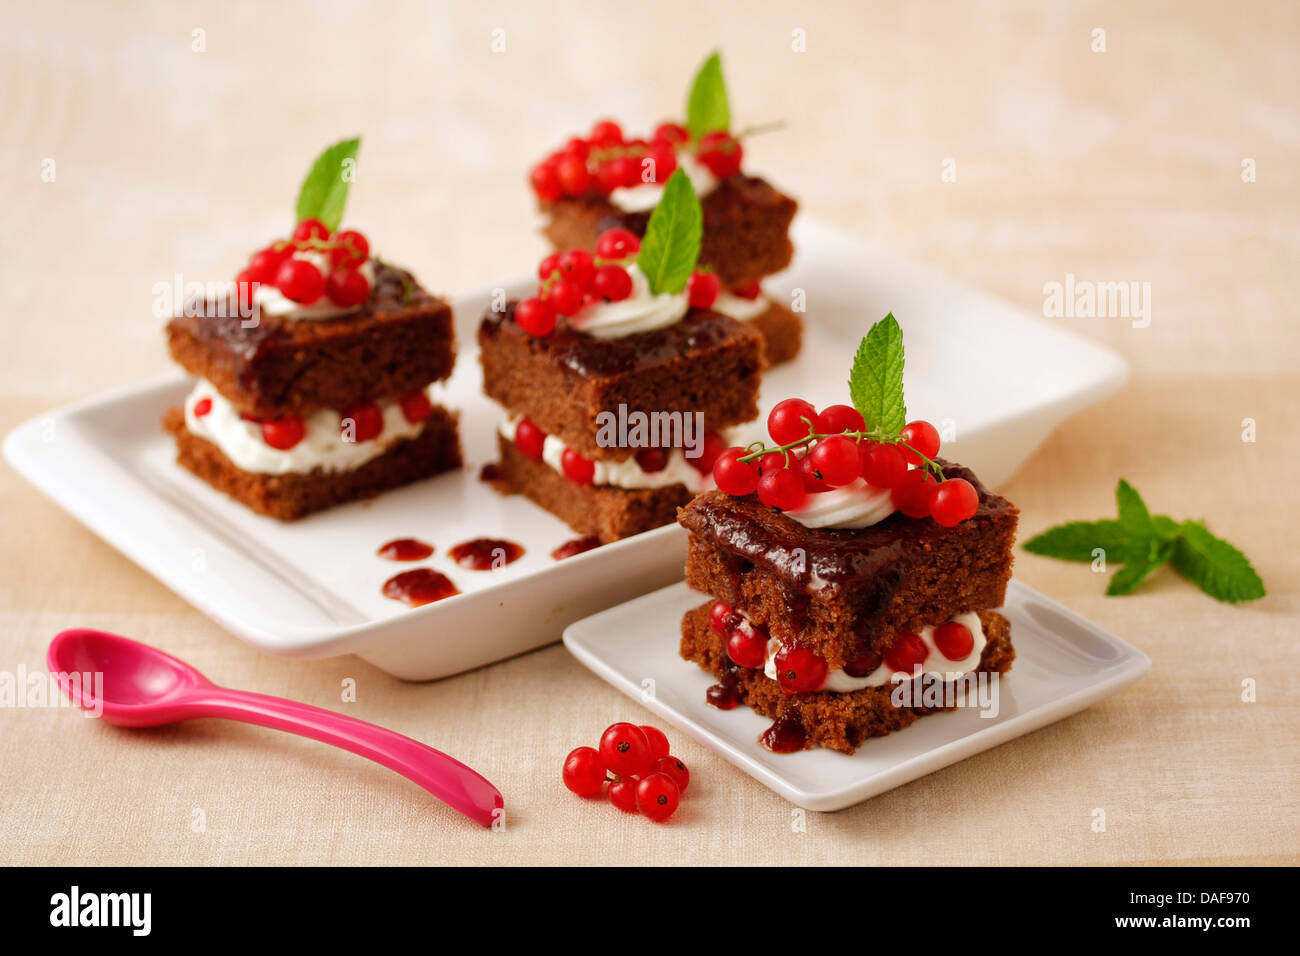 Chocolate sponge cakes with red currants. Recipe available. - Stock Image